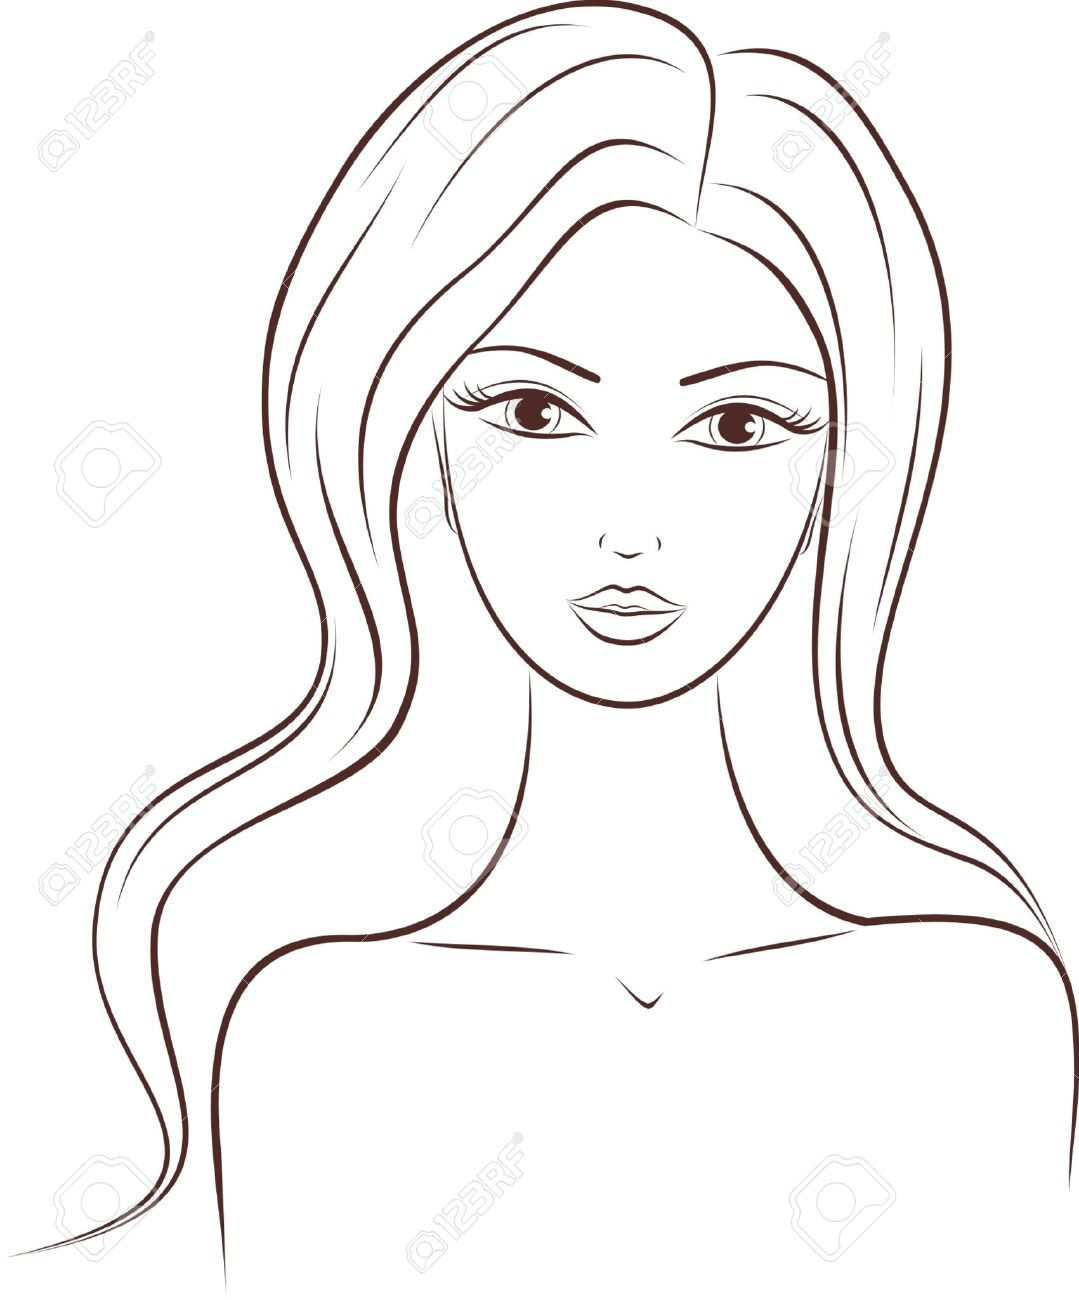 illustration of a woman with long hair.